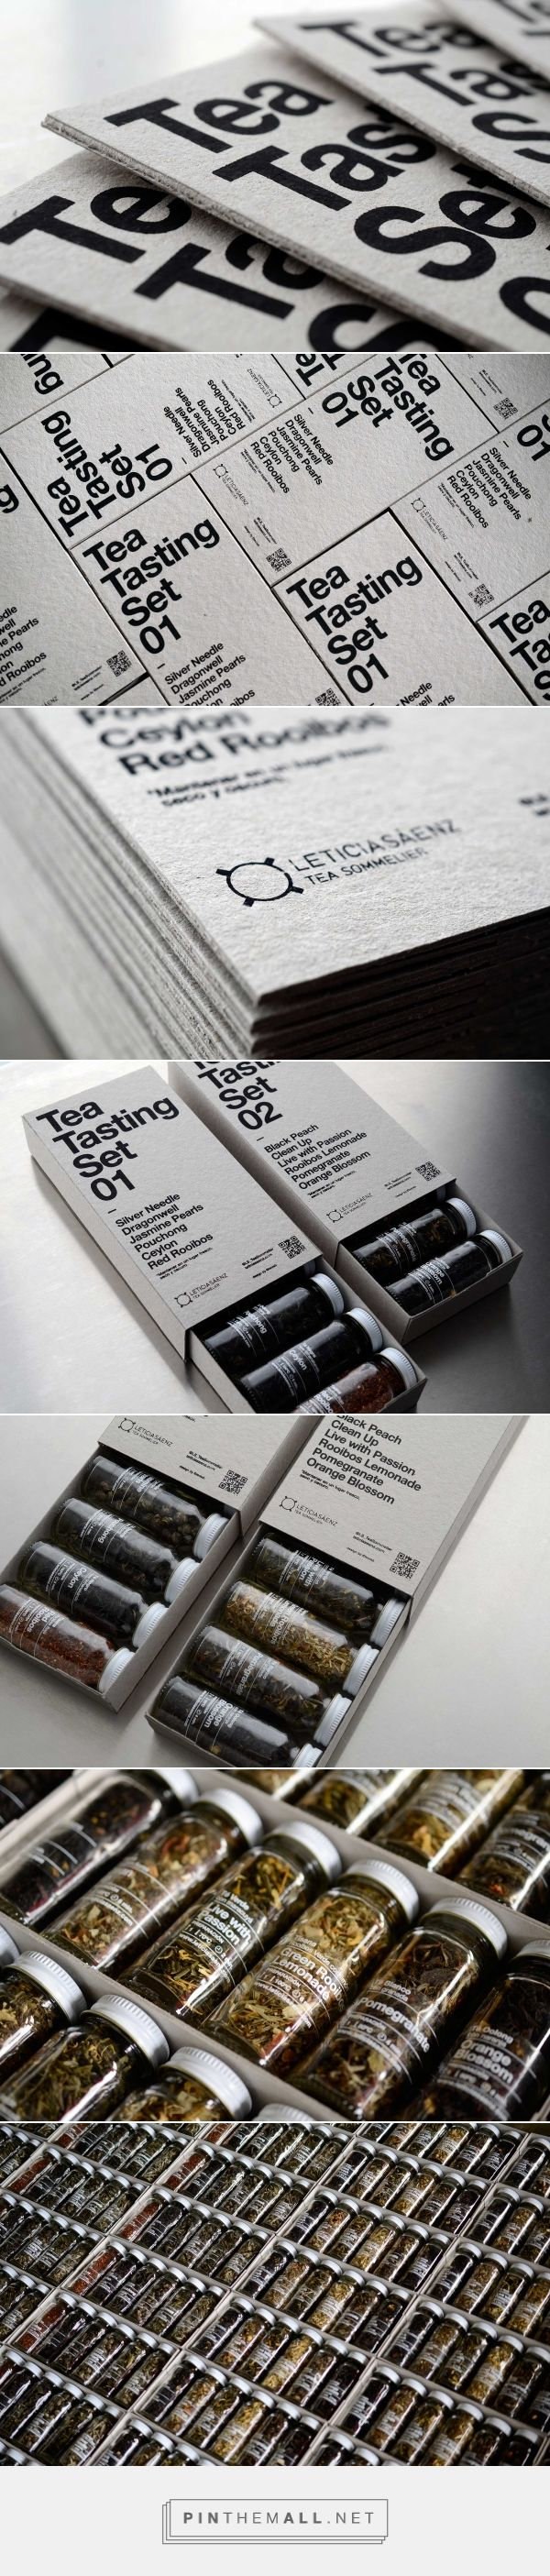 Tea Tasting Sets V1 - - created via http://pinthemall.net                                                                                                                                                      More                                                                                                                                                                                 More